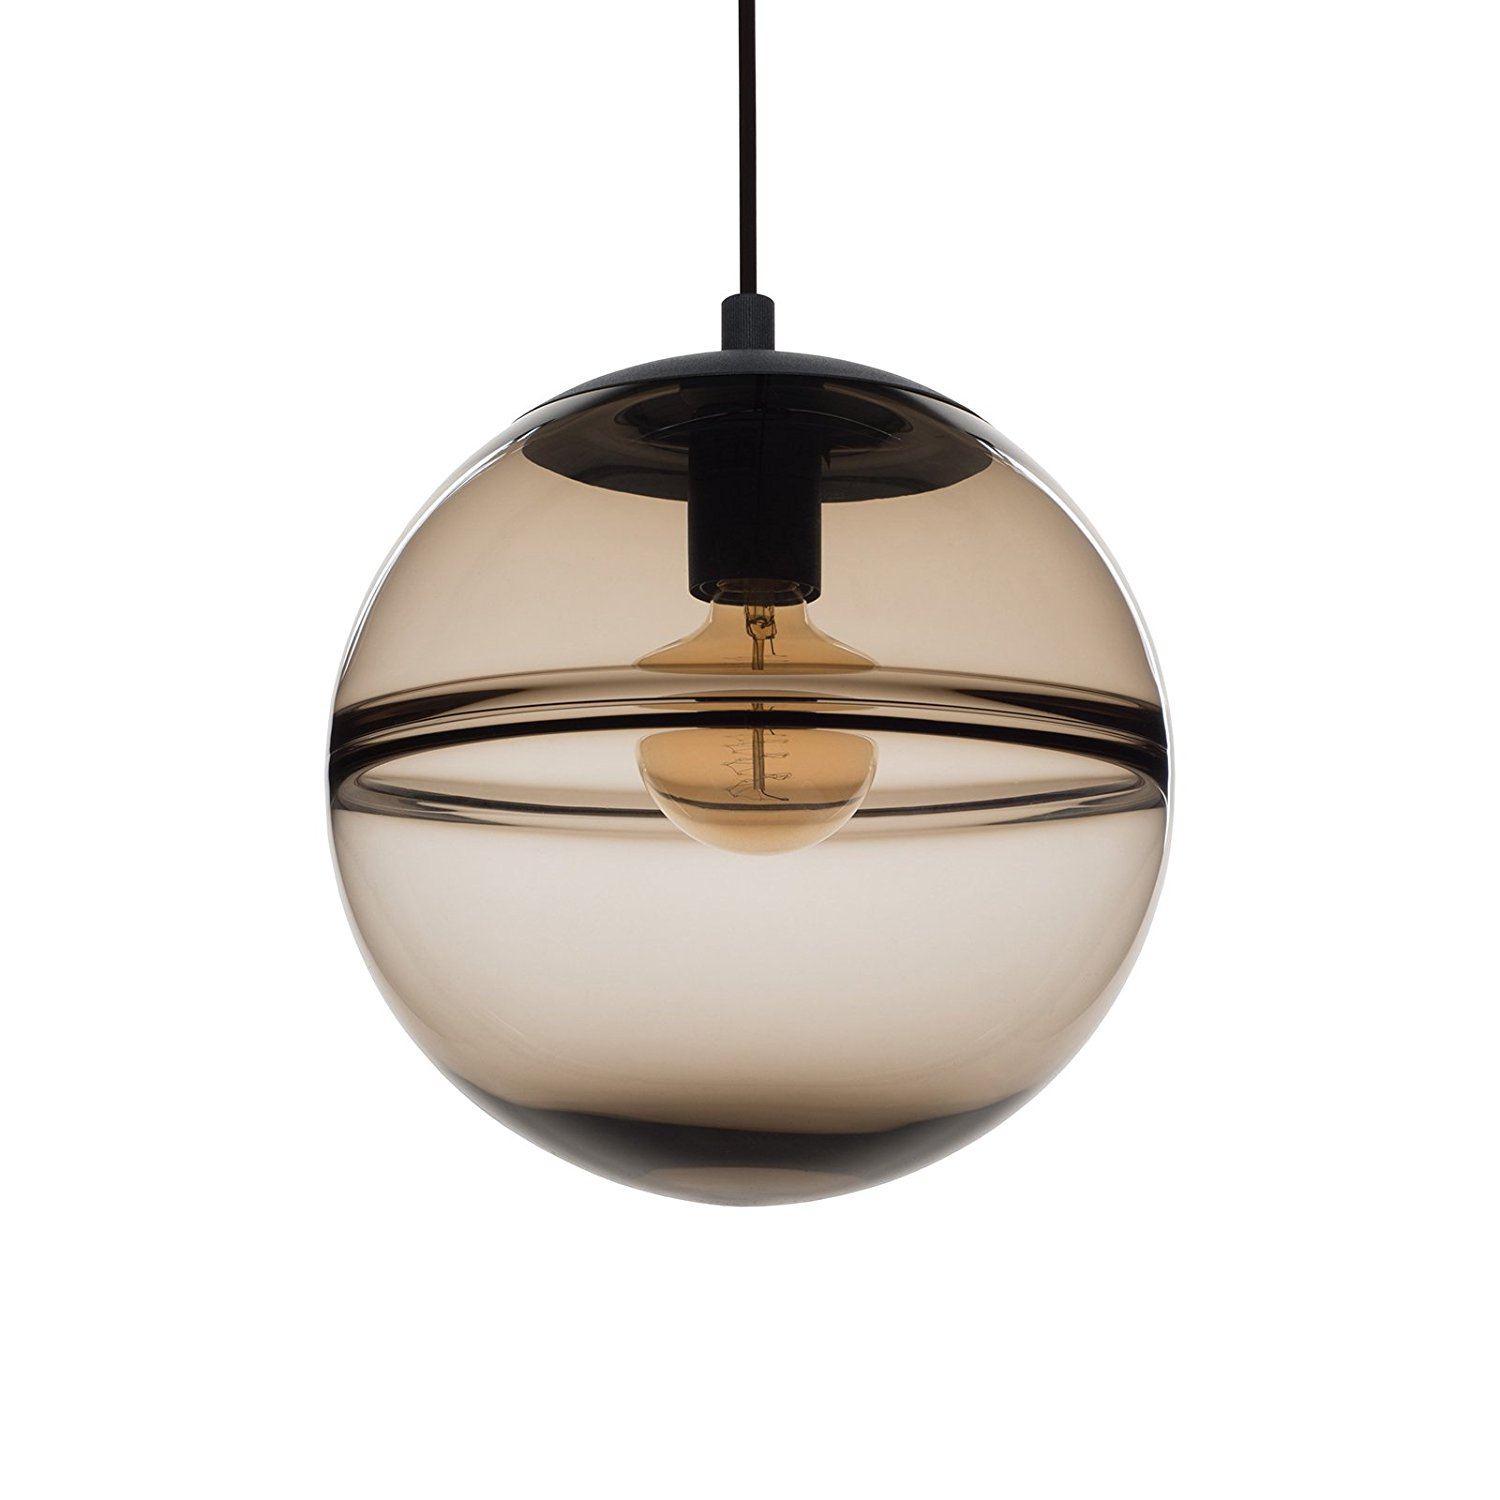 CASAMOTION Optic Contemporary Hand Blown Glass Pendant Light, Ceiling Hanging Lighting Fixtures, Light Brown